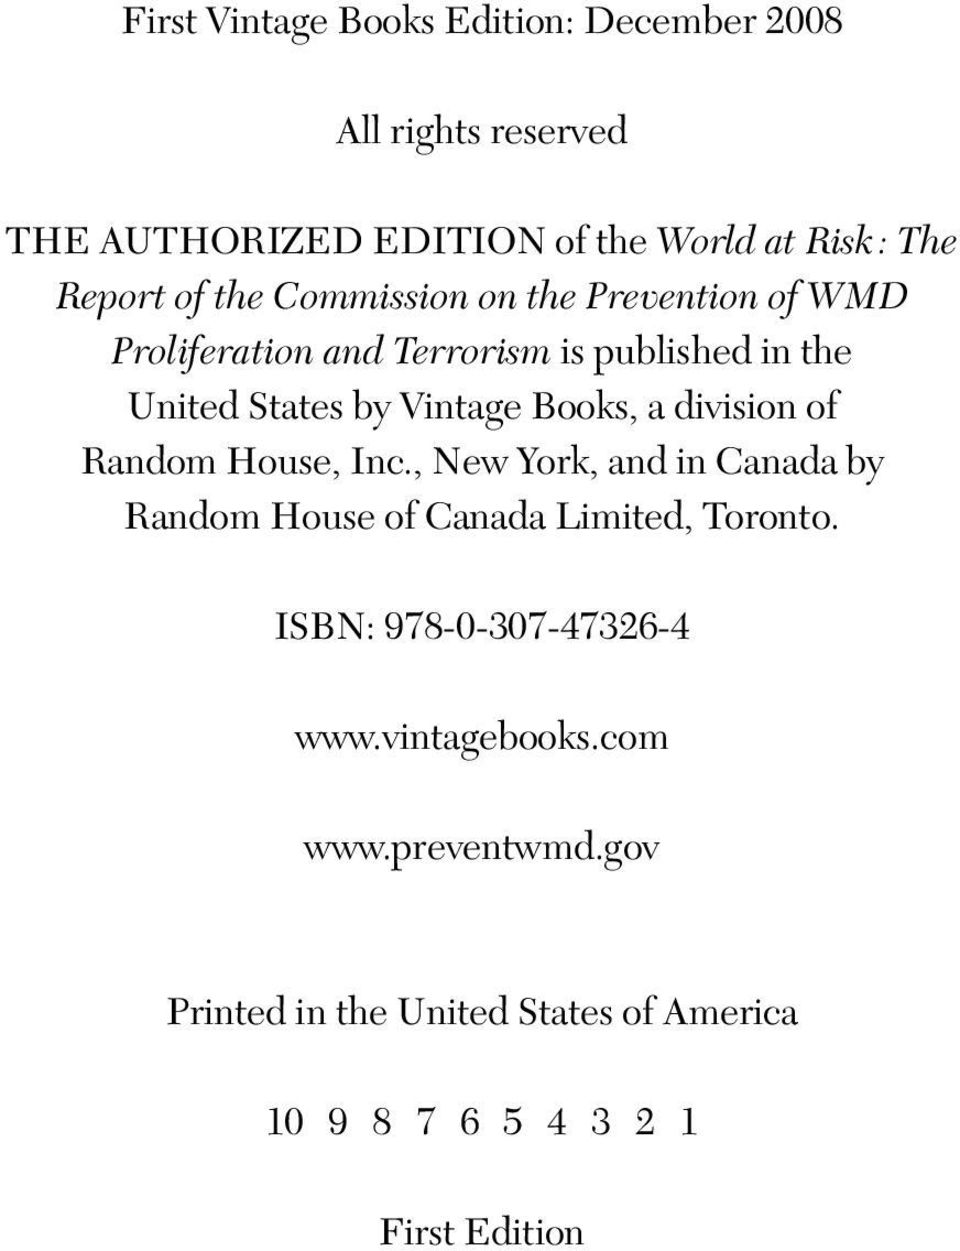 Books, a division of Random House, Inc., New York, and in Canada by Random House of Canada Limited, Toronto.